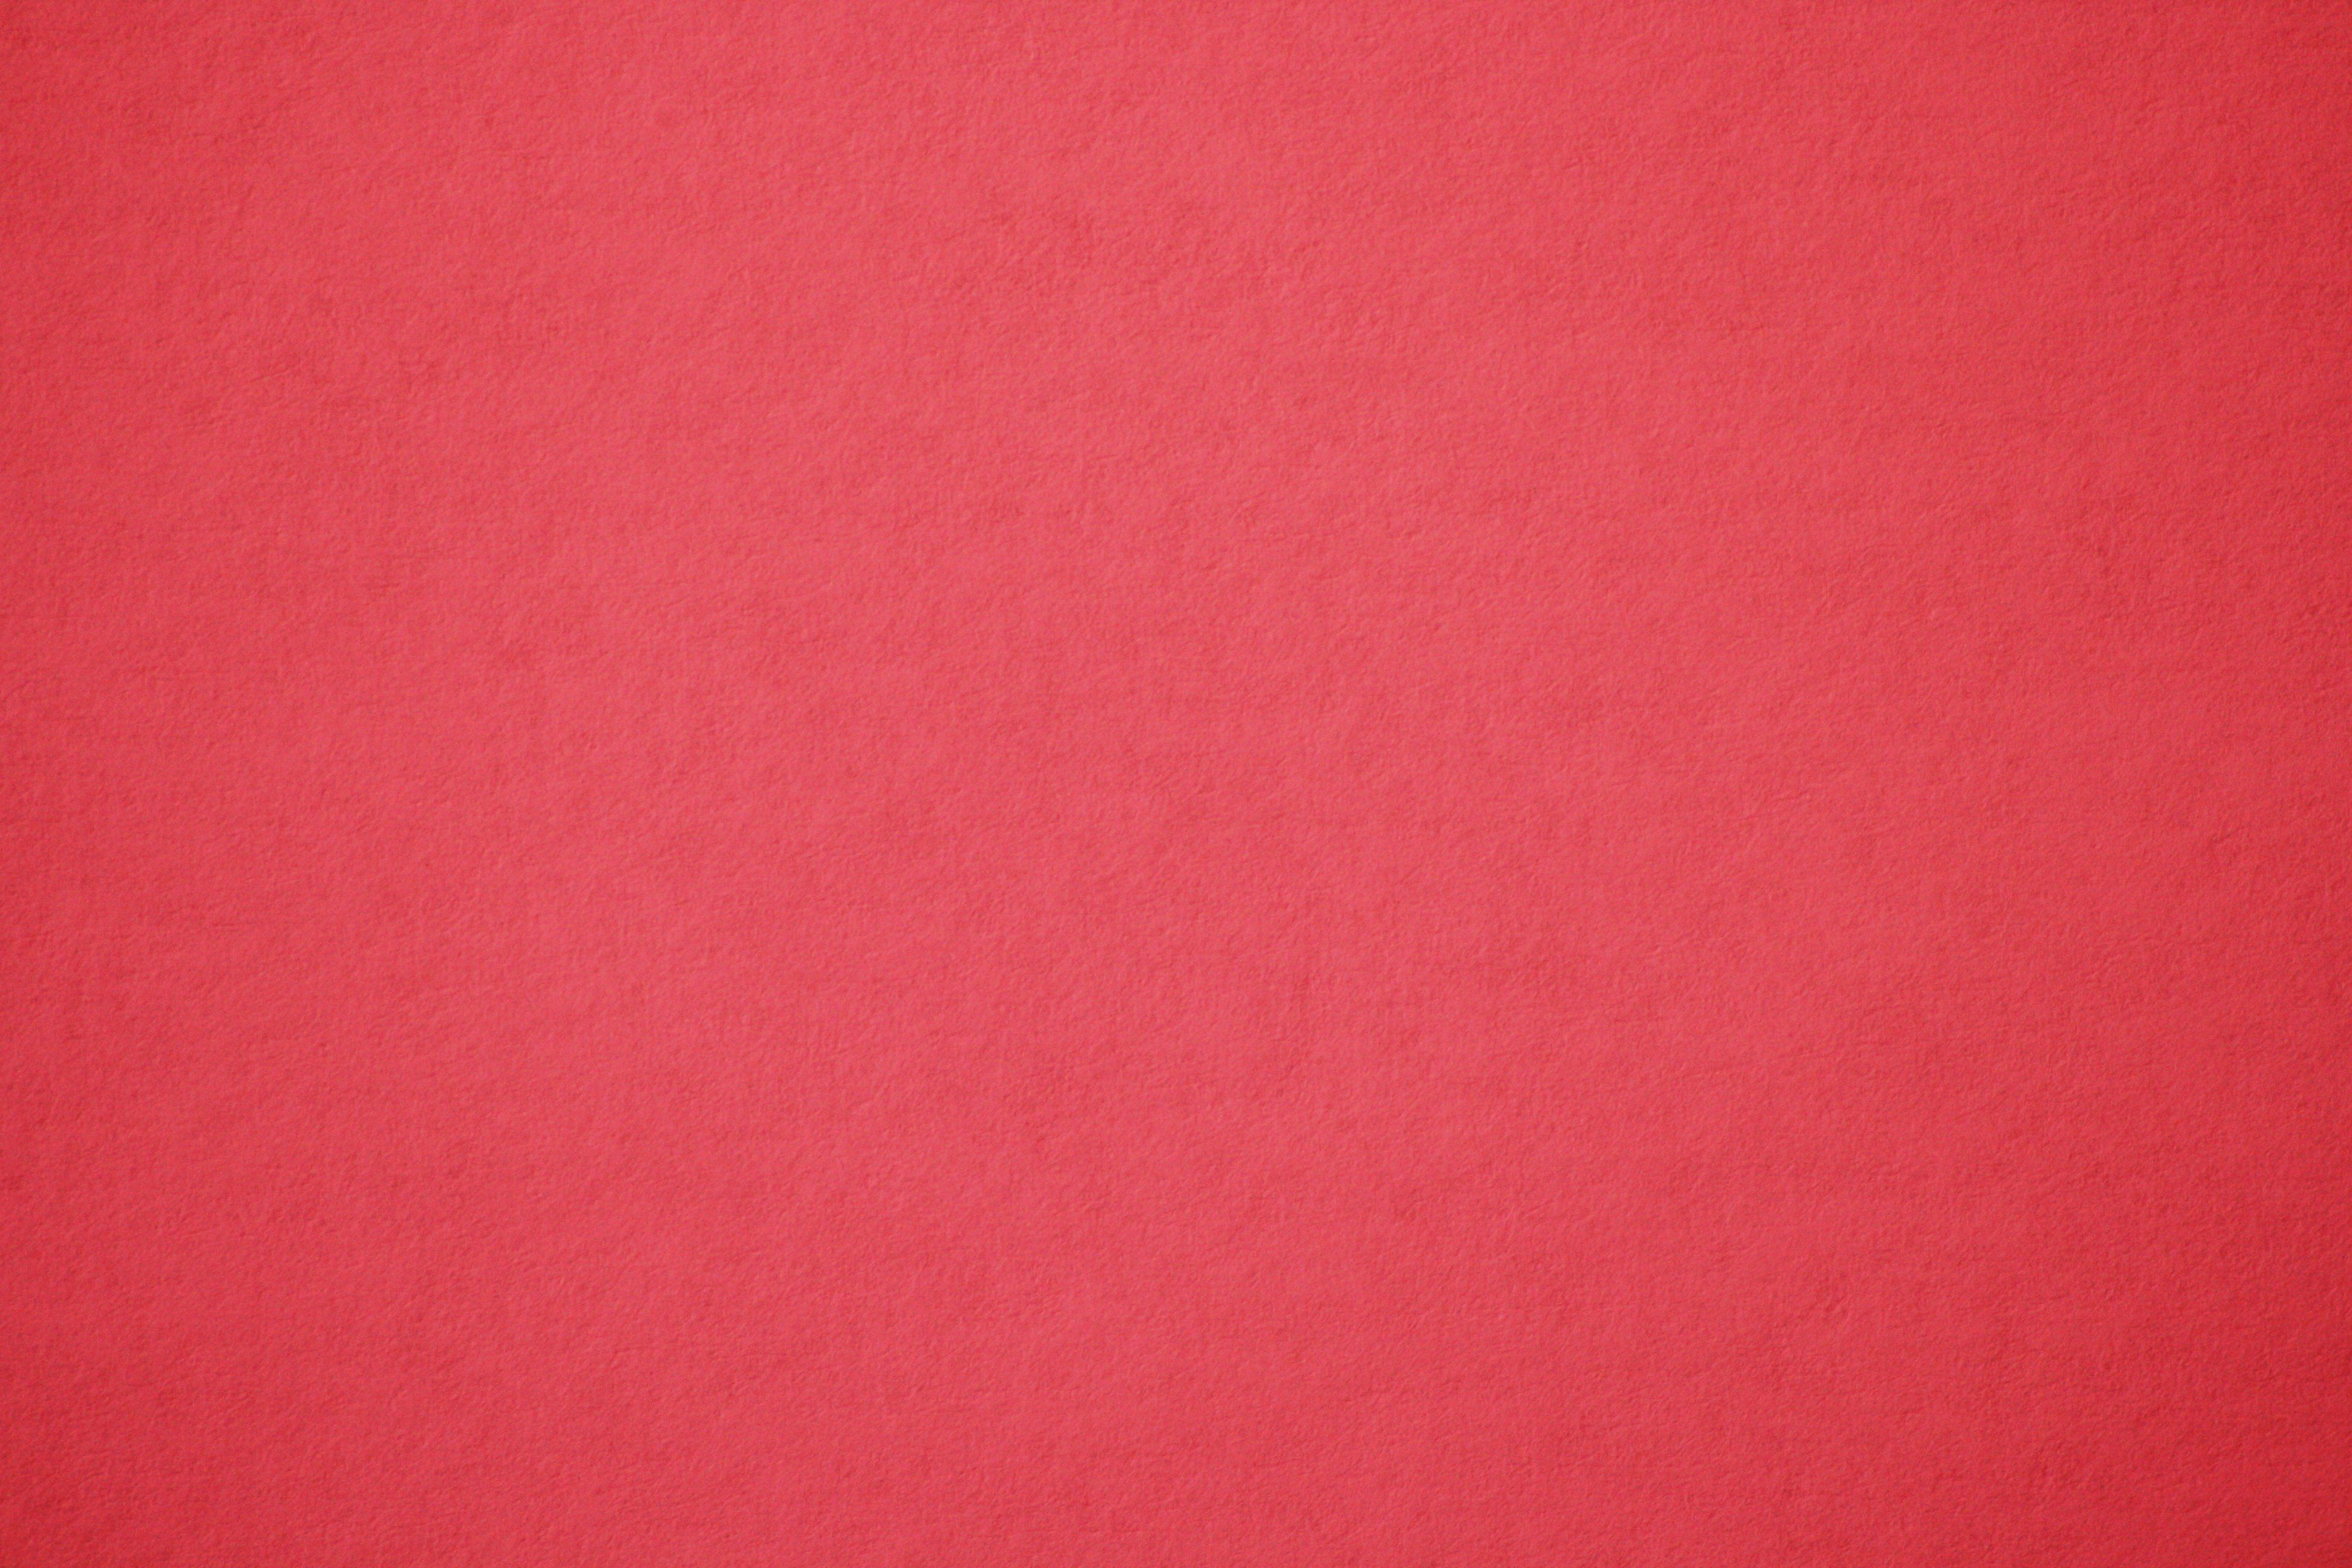 Bright Red Paper Texture | Centering book | Pinterest | Red paper ...